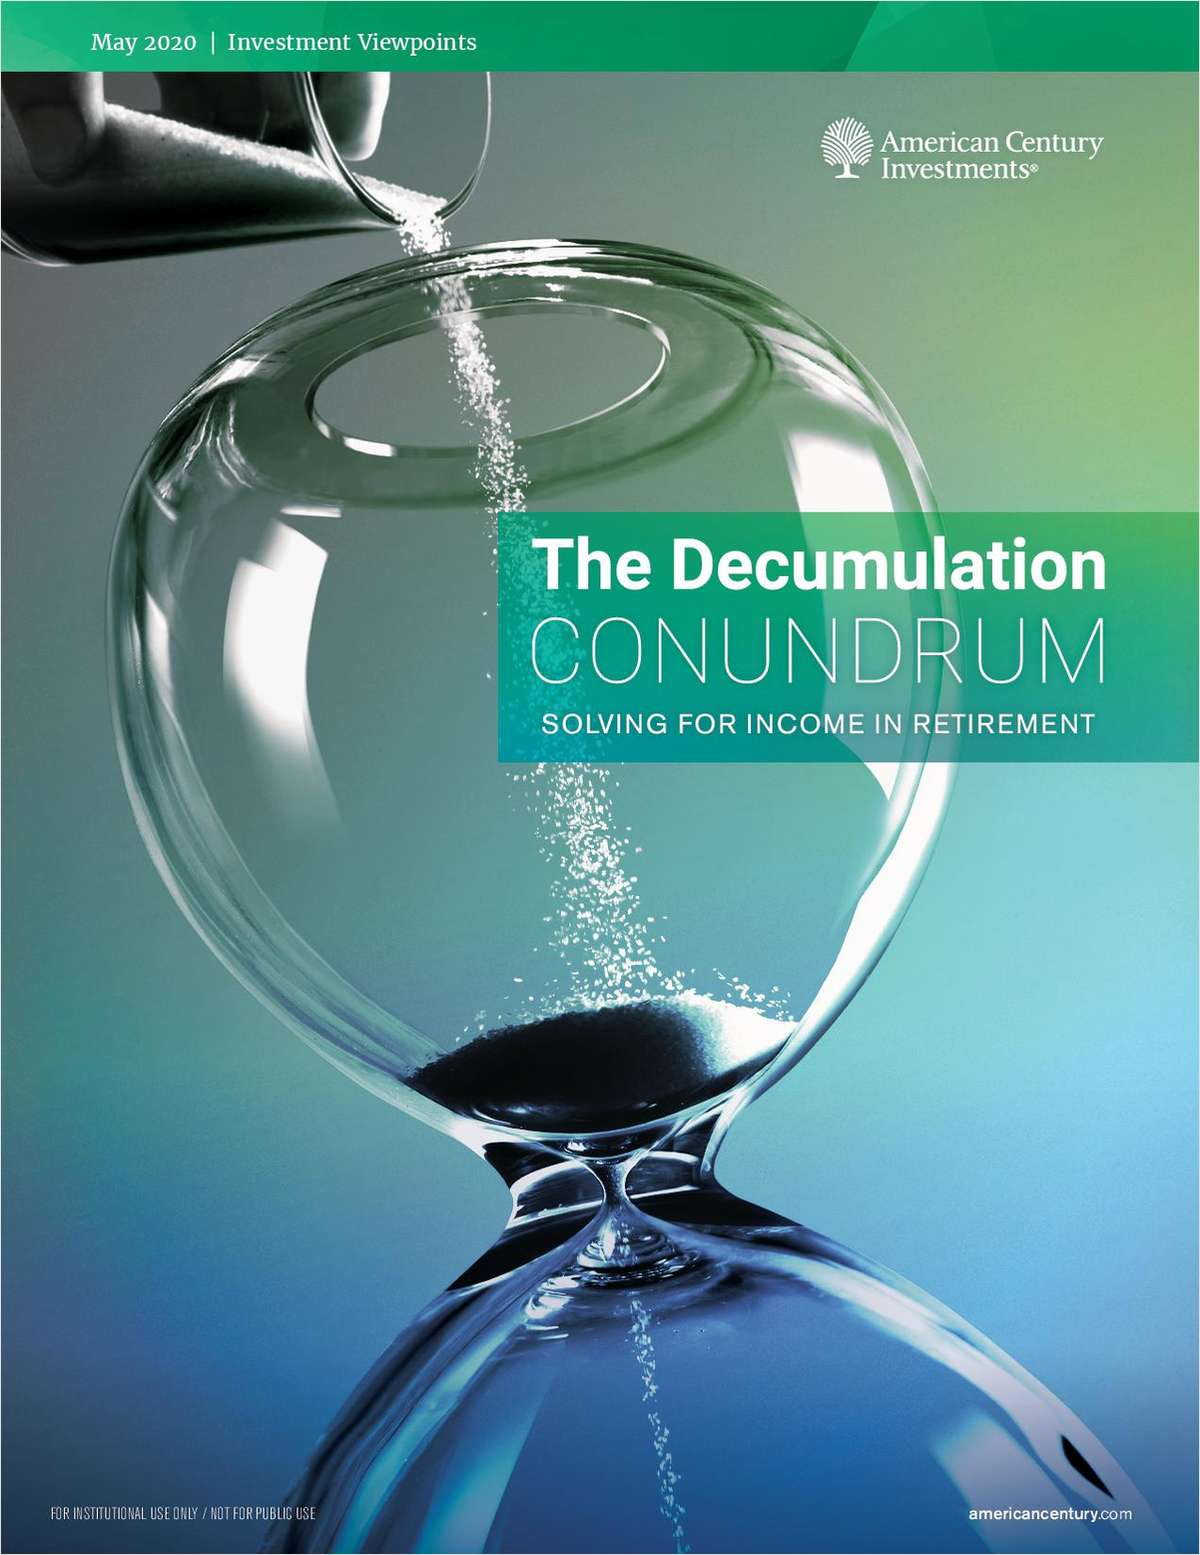 The Decumulation Conundrum: Solving for Income in Retirement